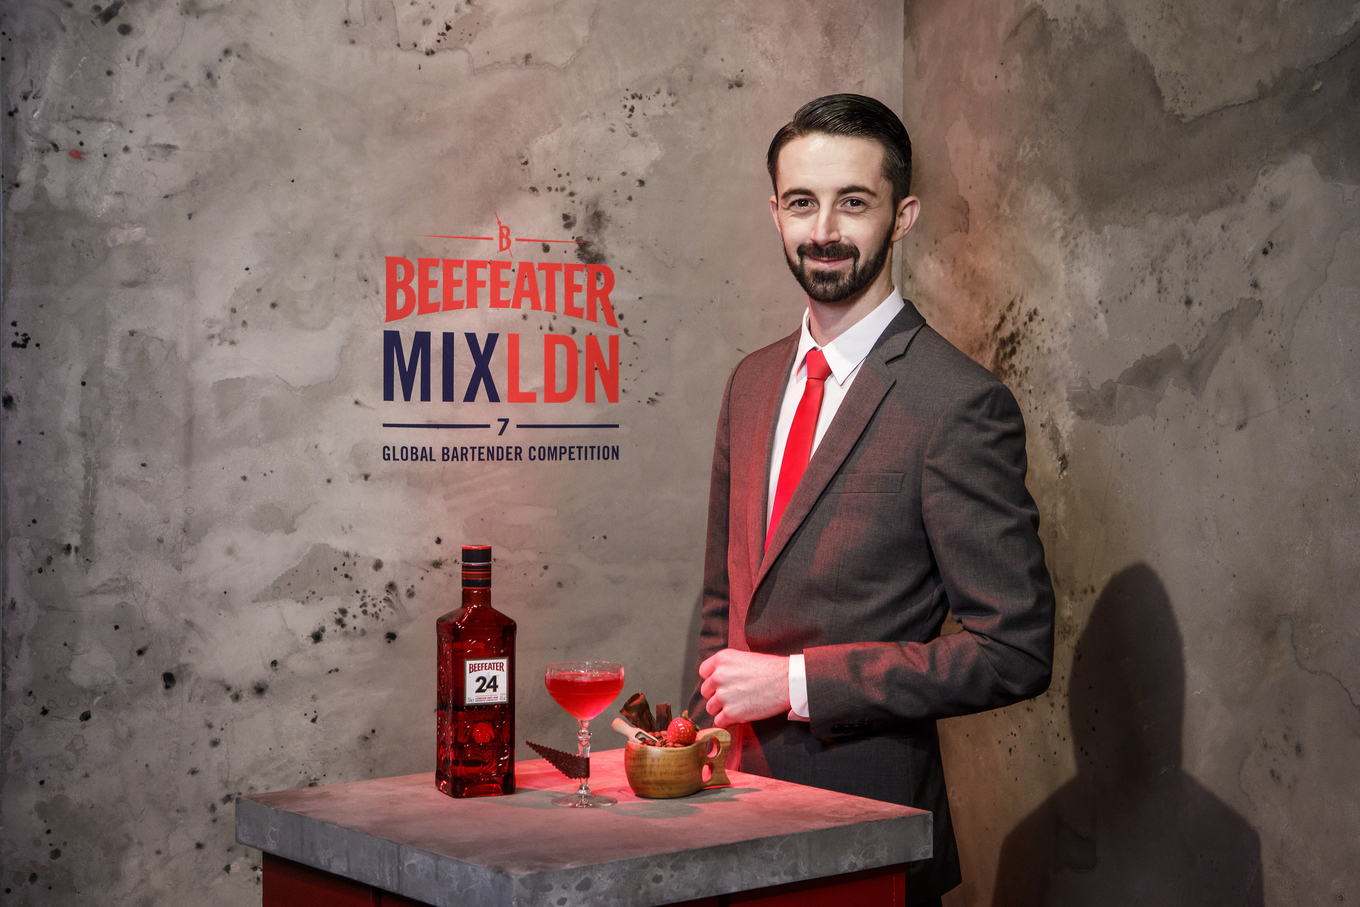 Beefeater MIXLDN - Maxime Verrier image 1